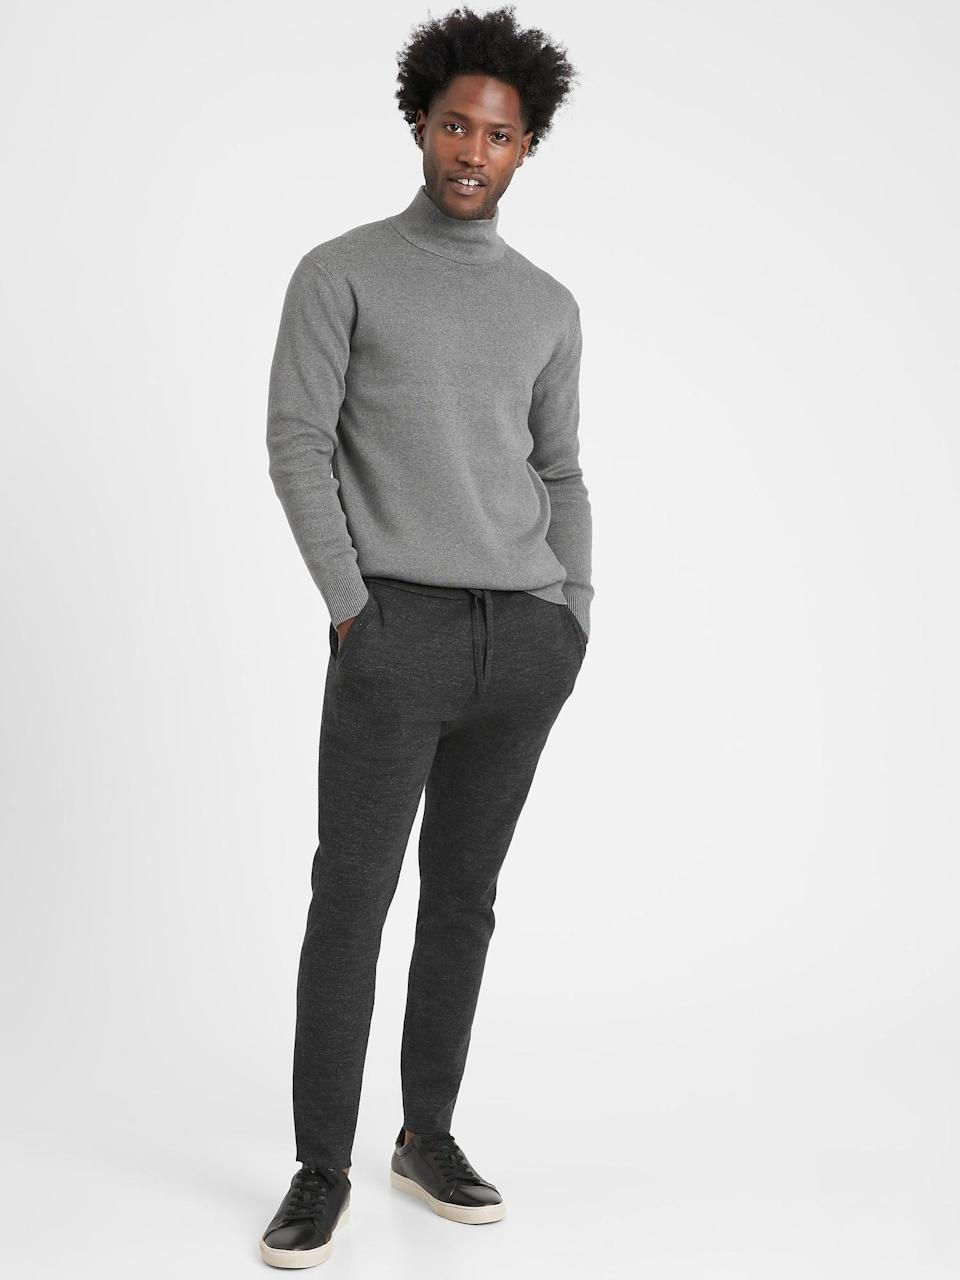 <p>Bring a loved one up to date on your love of soft pants (that are <em>not</em> sweatpants) with these <span>Banana Republic Organic Cotton Sweater Joggers</span> ($99).</p>